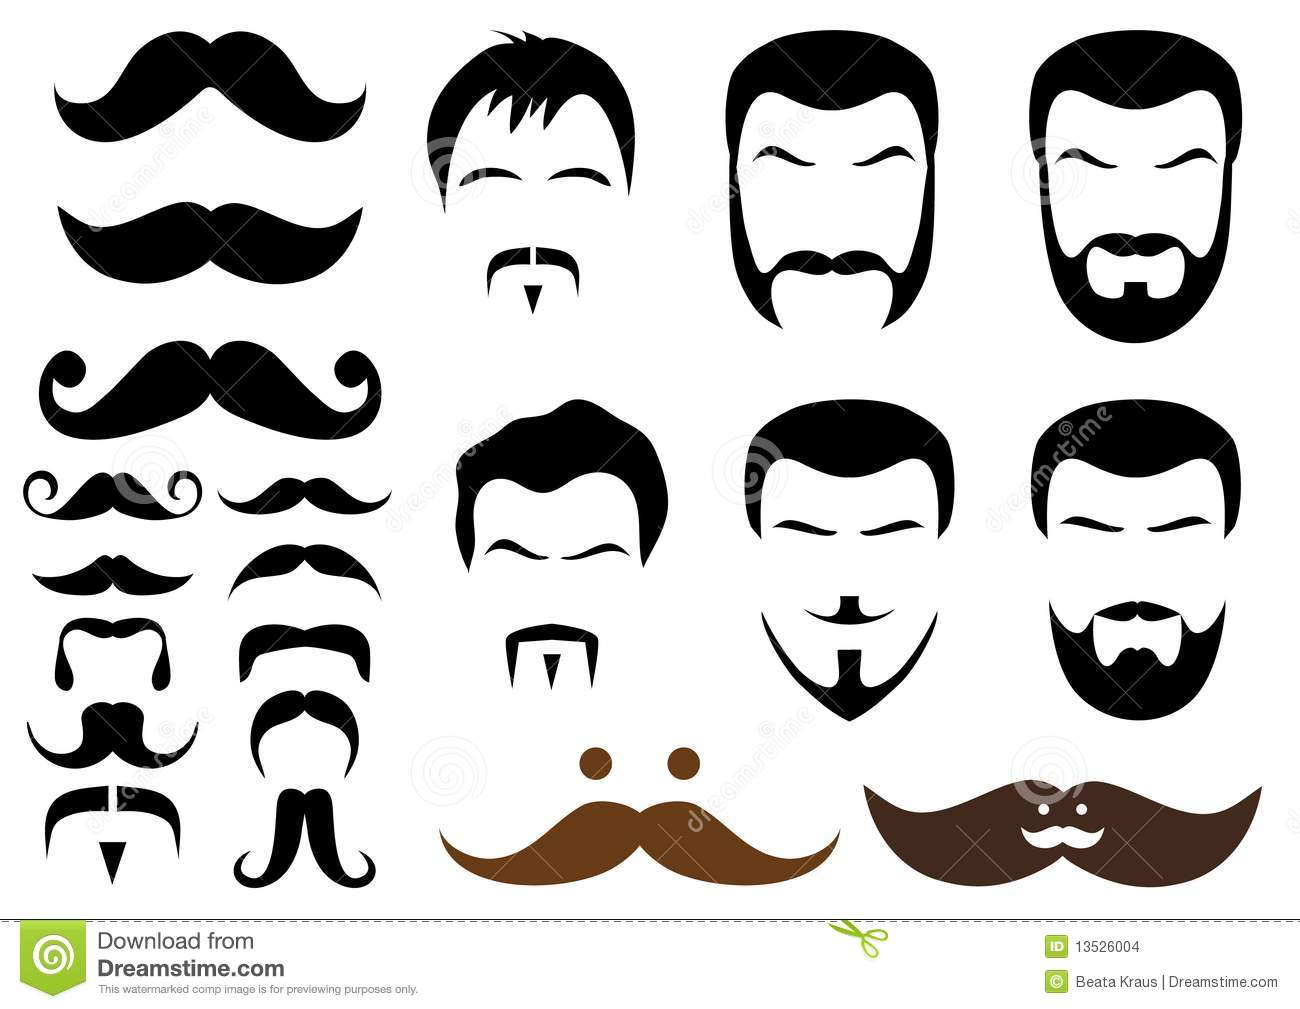 how to grow a curly mustache